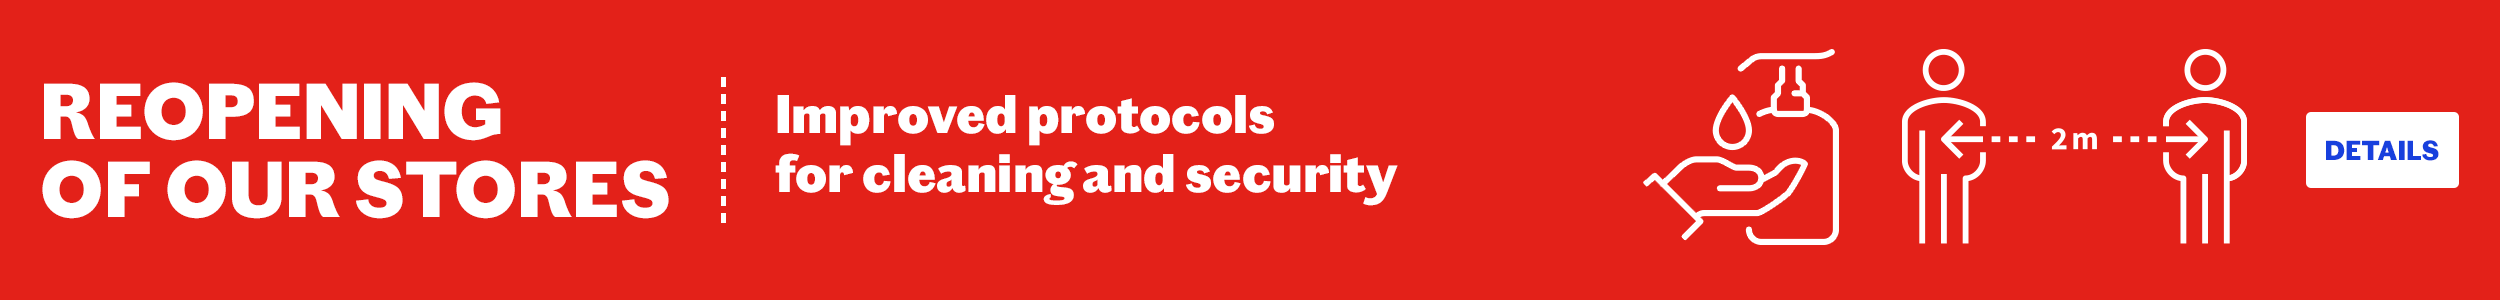 Protocols cleaning and security